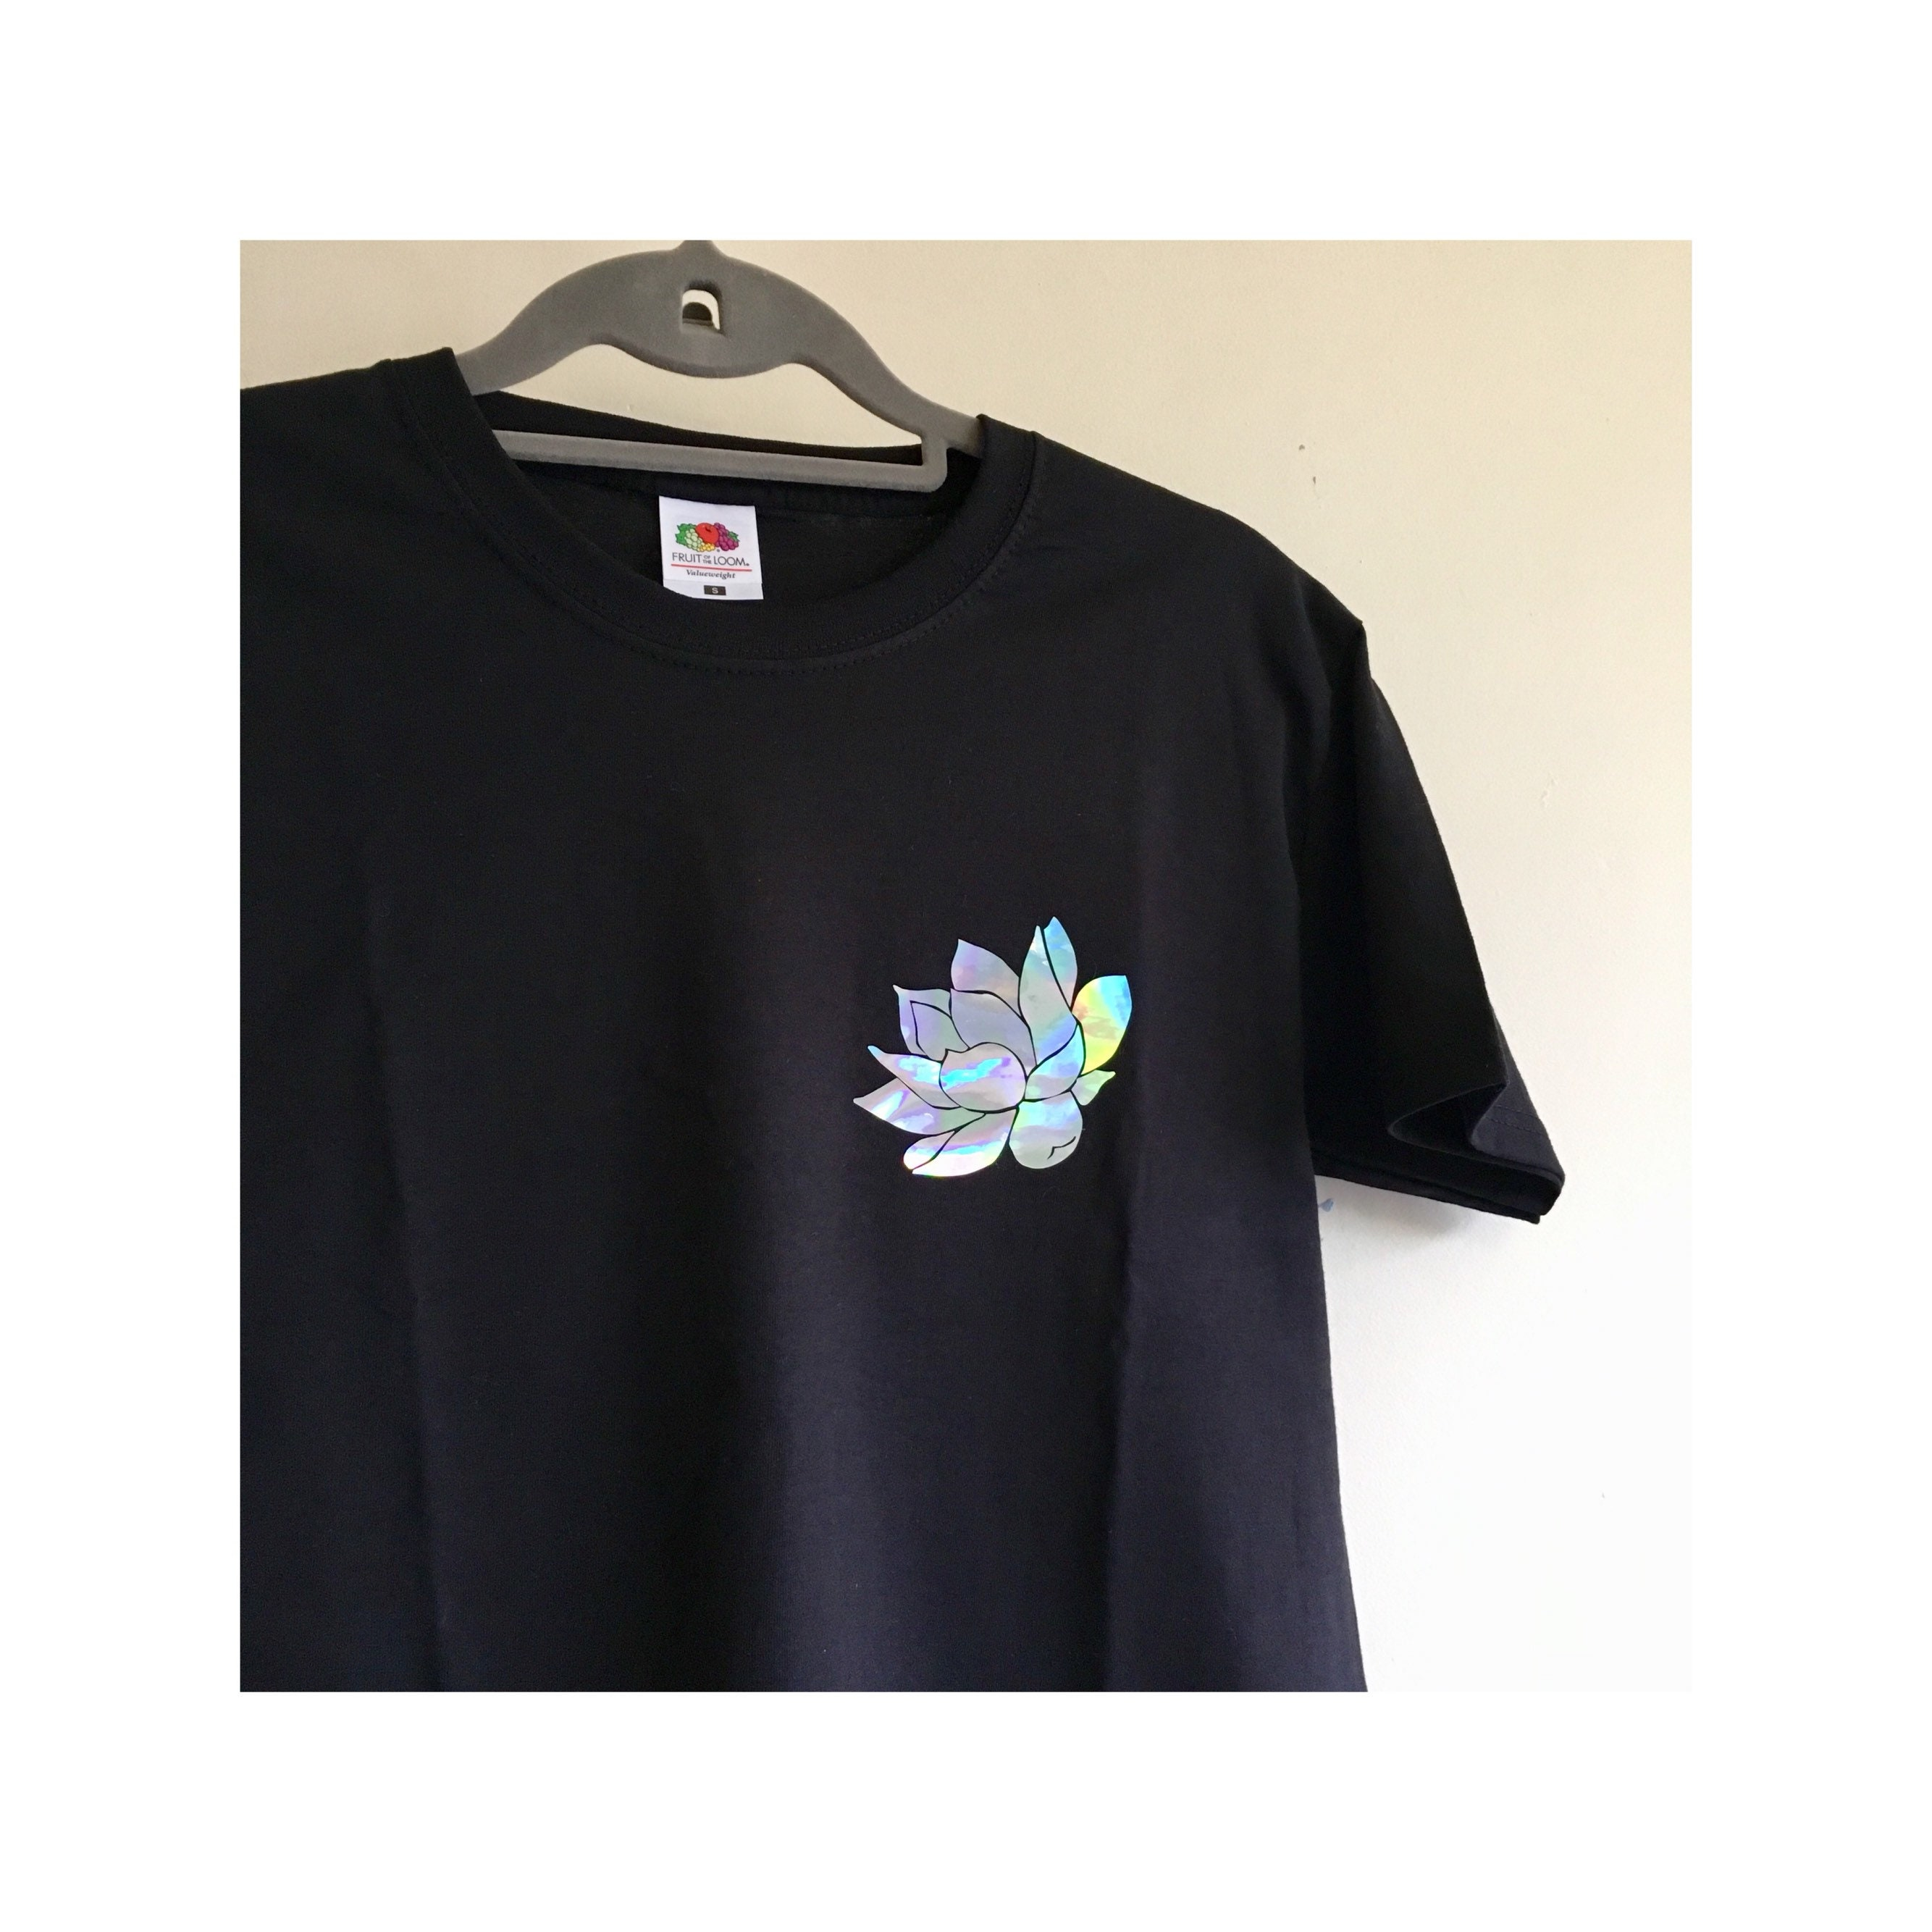 Black T Shirt With Holographic Lotus Flower Print